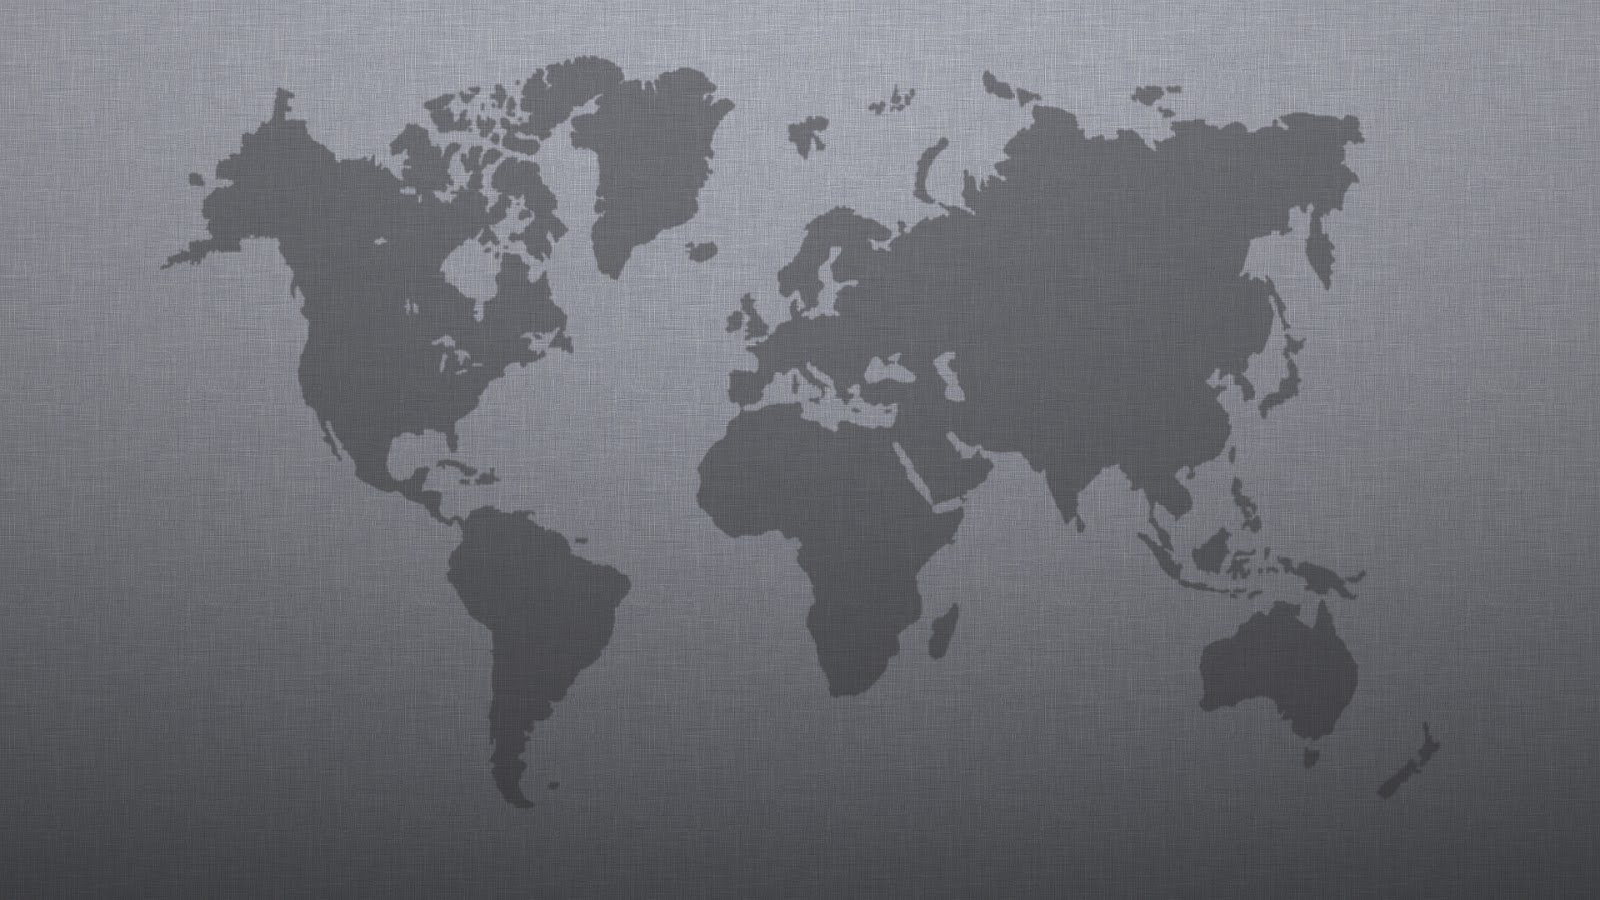 World map background black and white olivero designing for the internet phase 1 designing the world map gumiabroncs